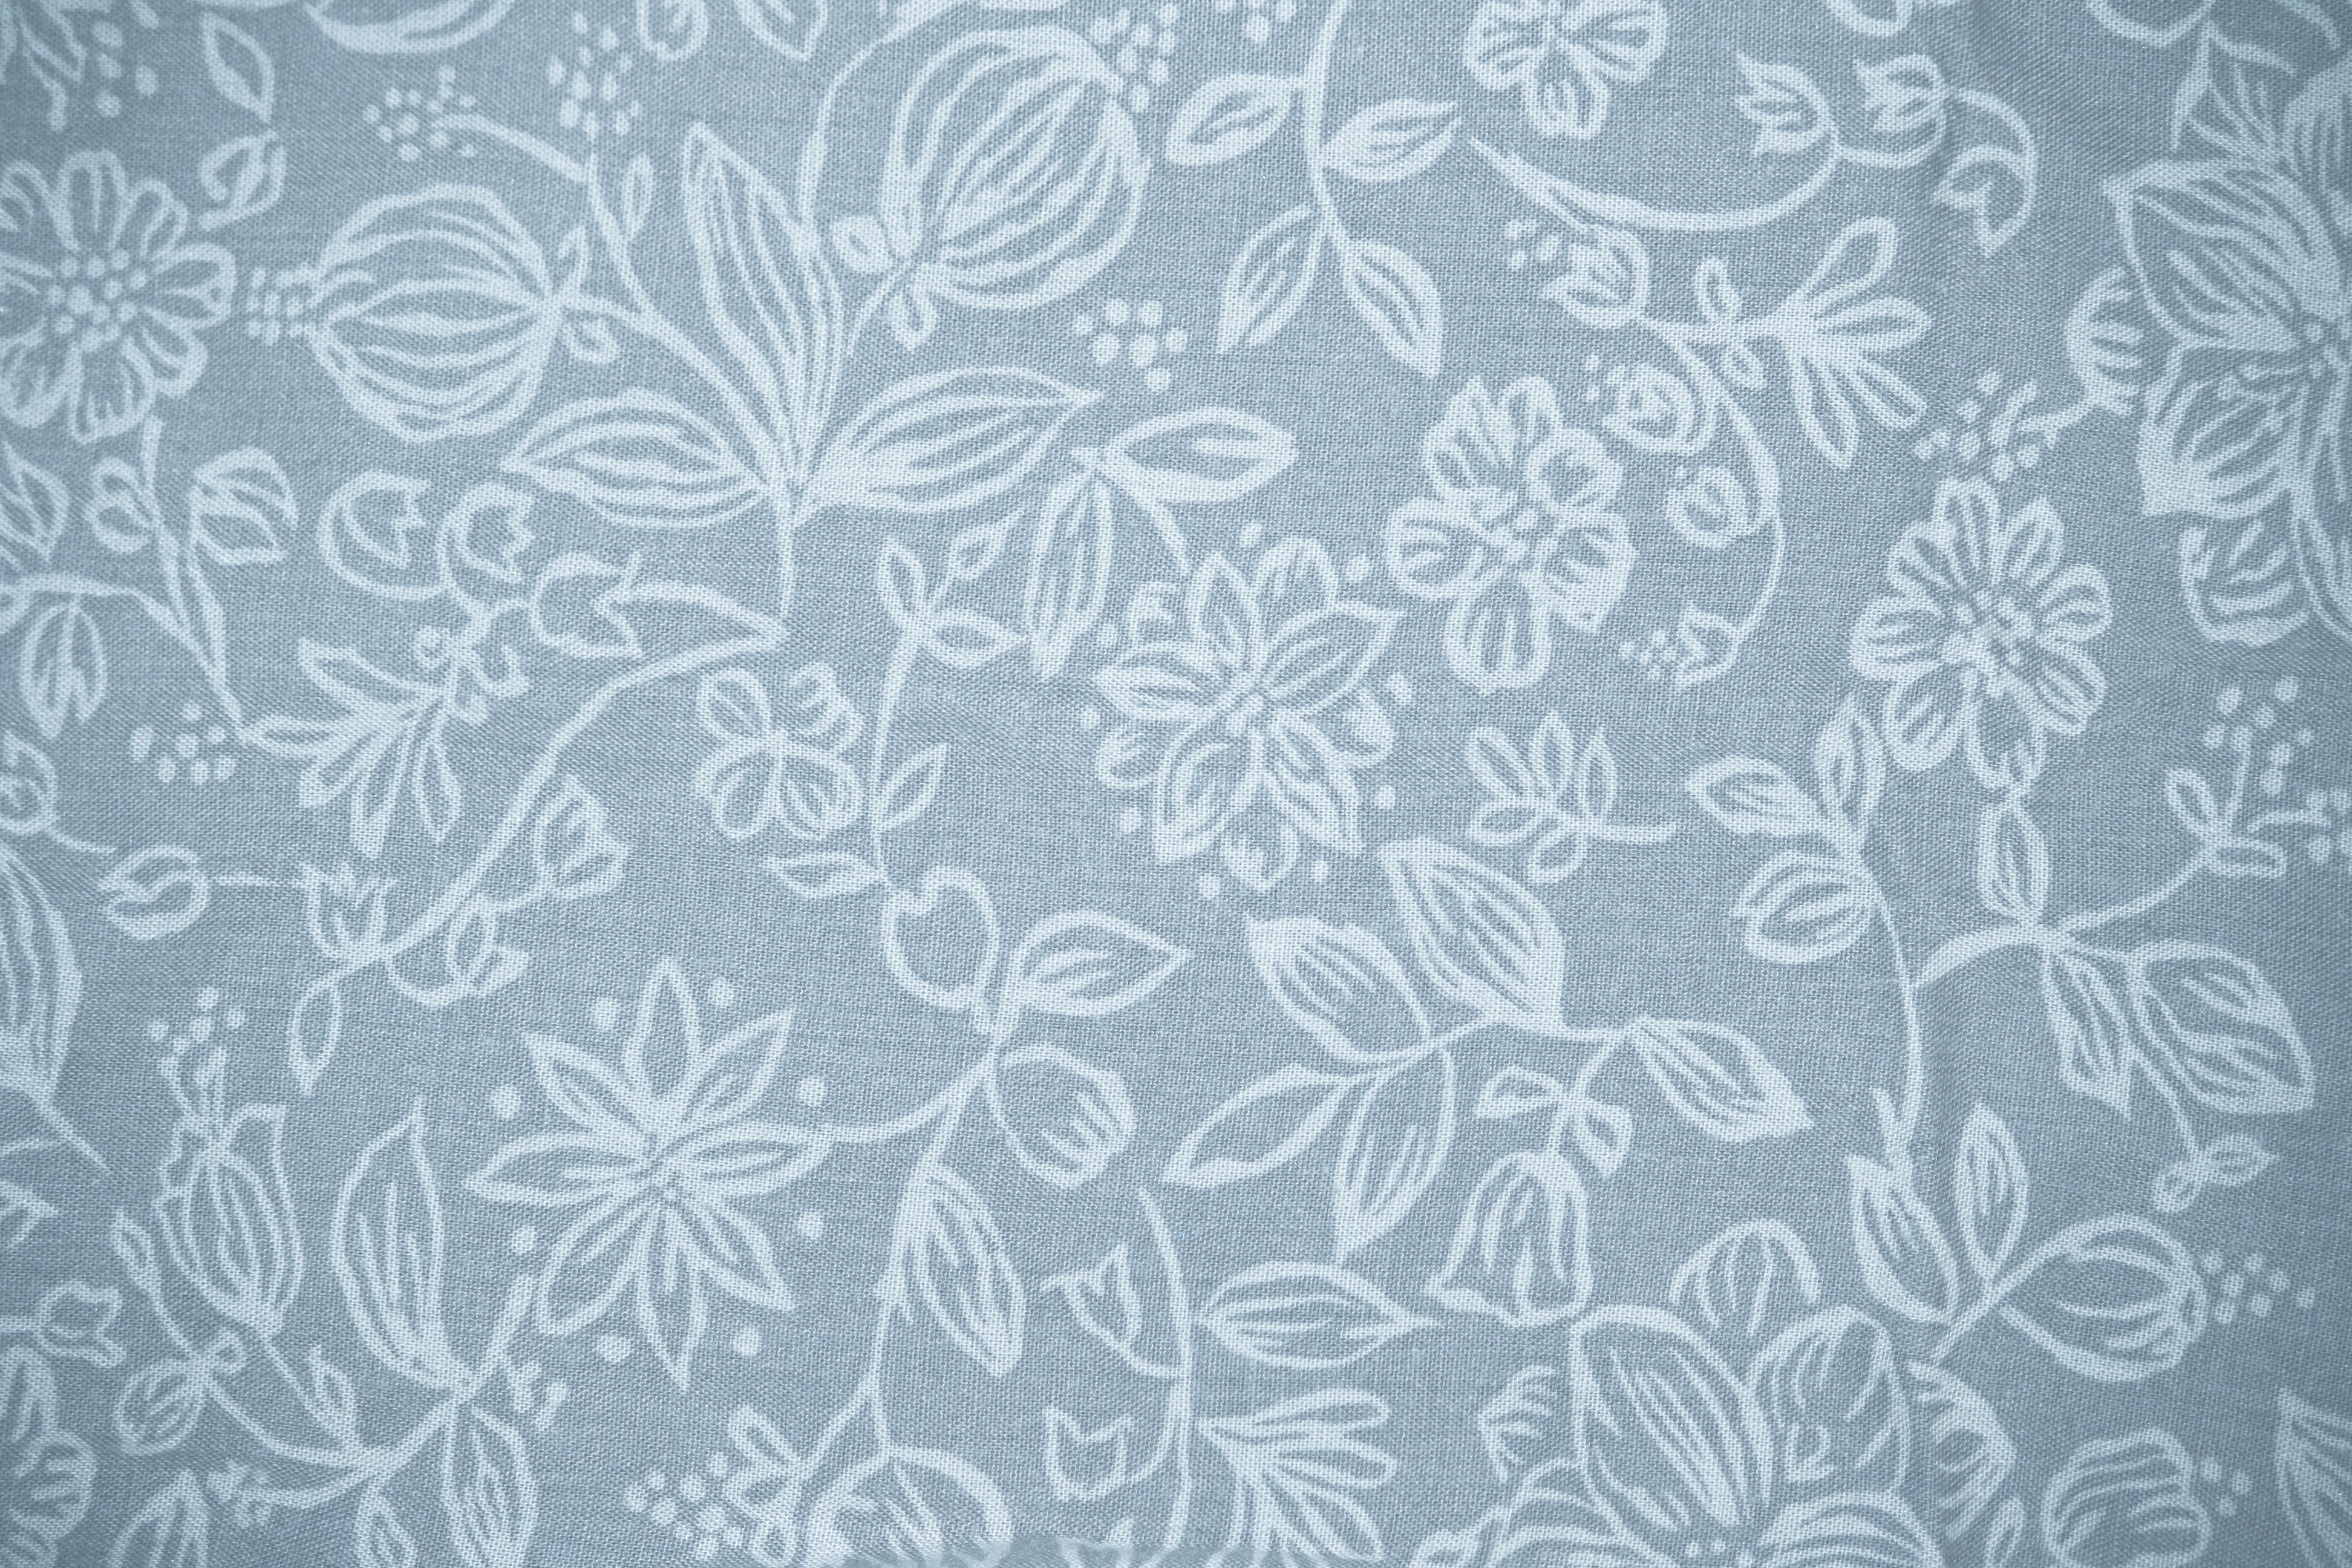 Blue Gray Fabric with Floral Pattern Texture Picture | Free ...